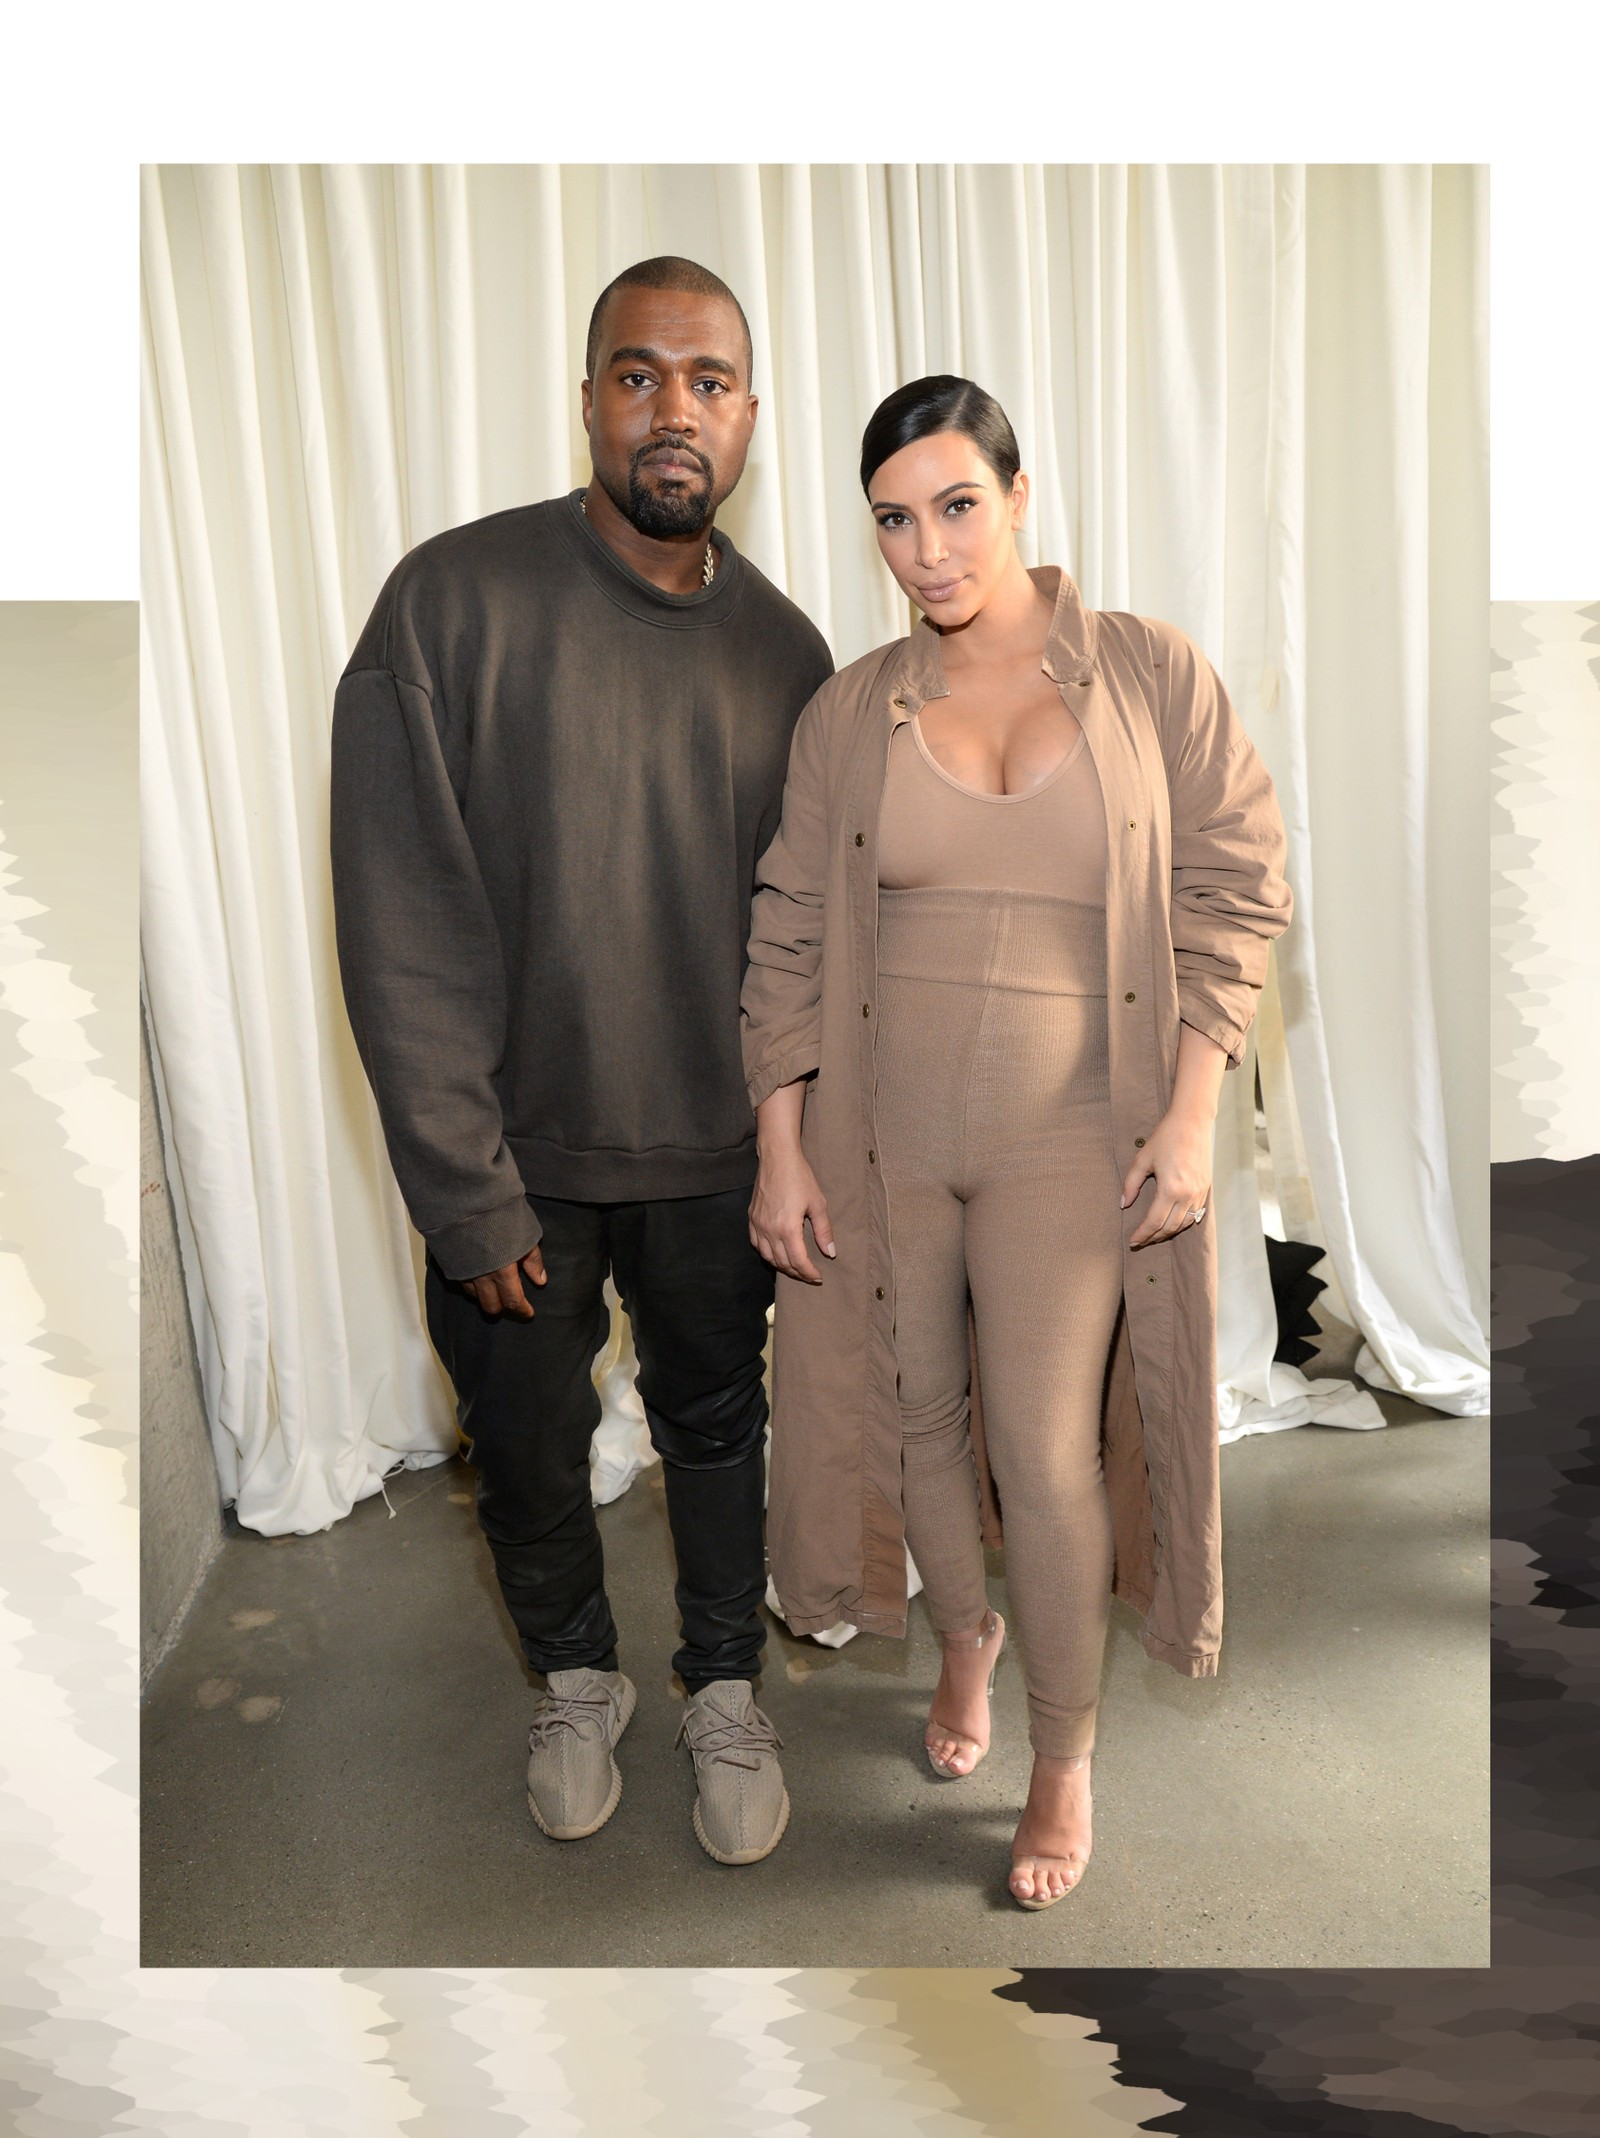 athleisure streetwear collaborations decade best of year 2019 2010s 2020 trends fashion designer logo logomania sustainability nike supreme kanye west ugly shoes dad kim kardashian millennial pink